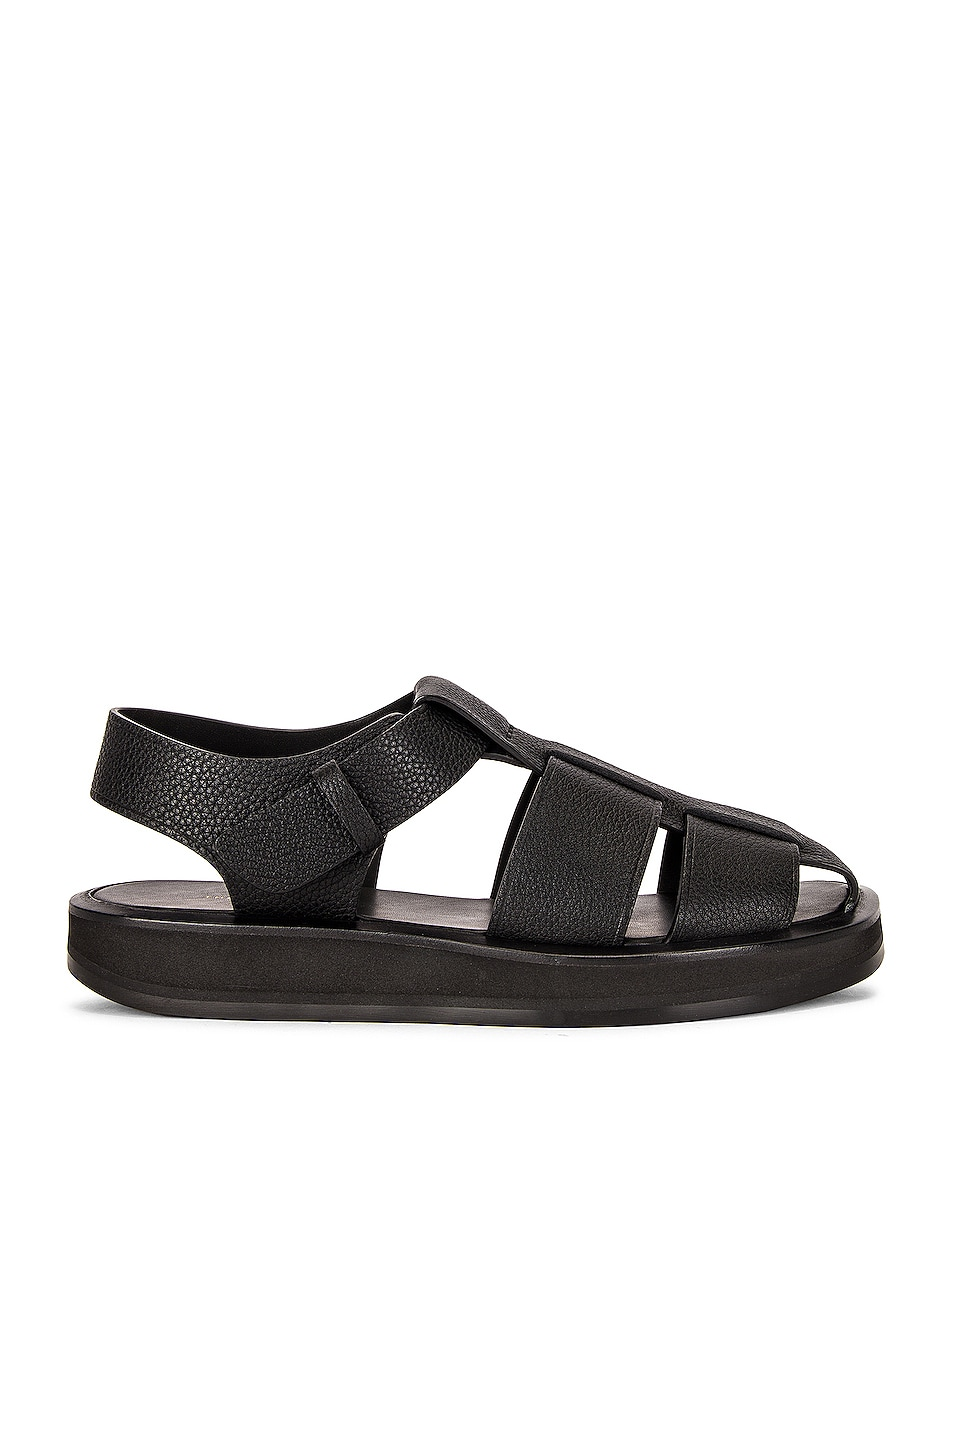 Image 1 of The Row Fisherman Leather Sandals in Black